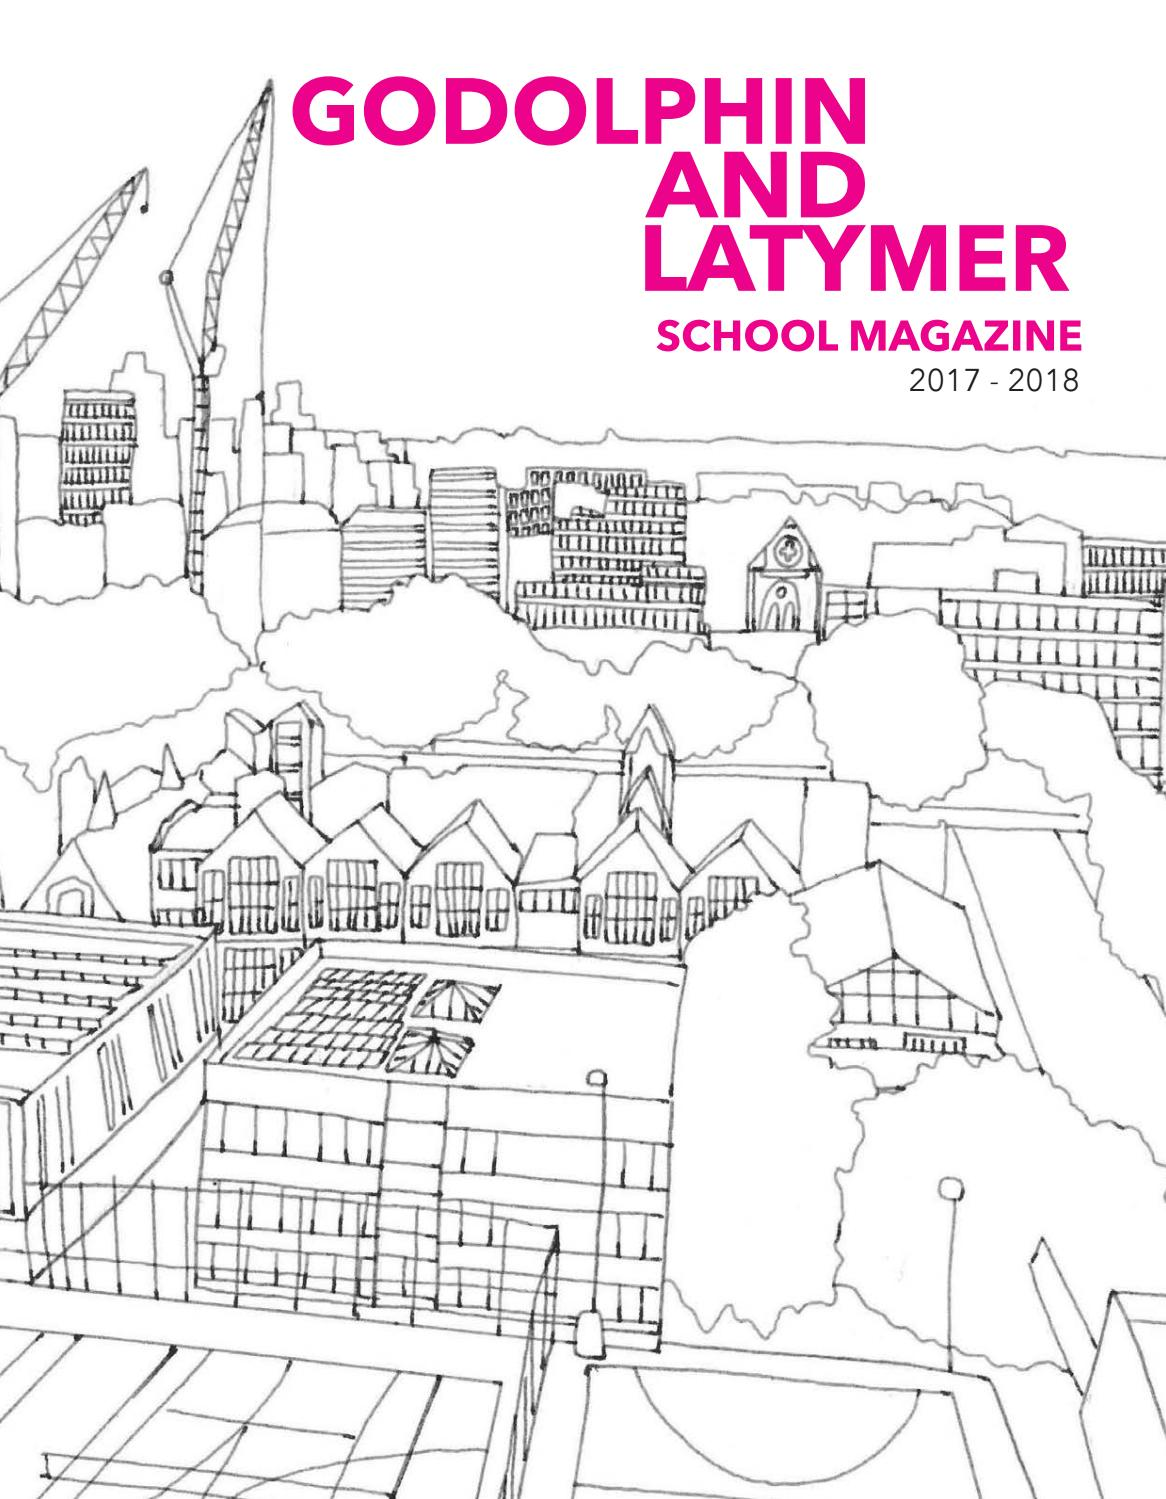 The Godolphin and Latymer School Magazine 2017 - 2018 by